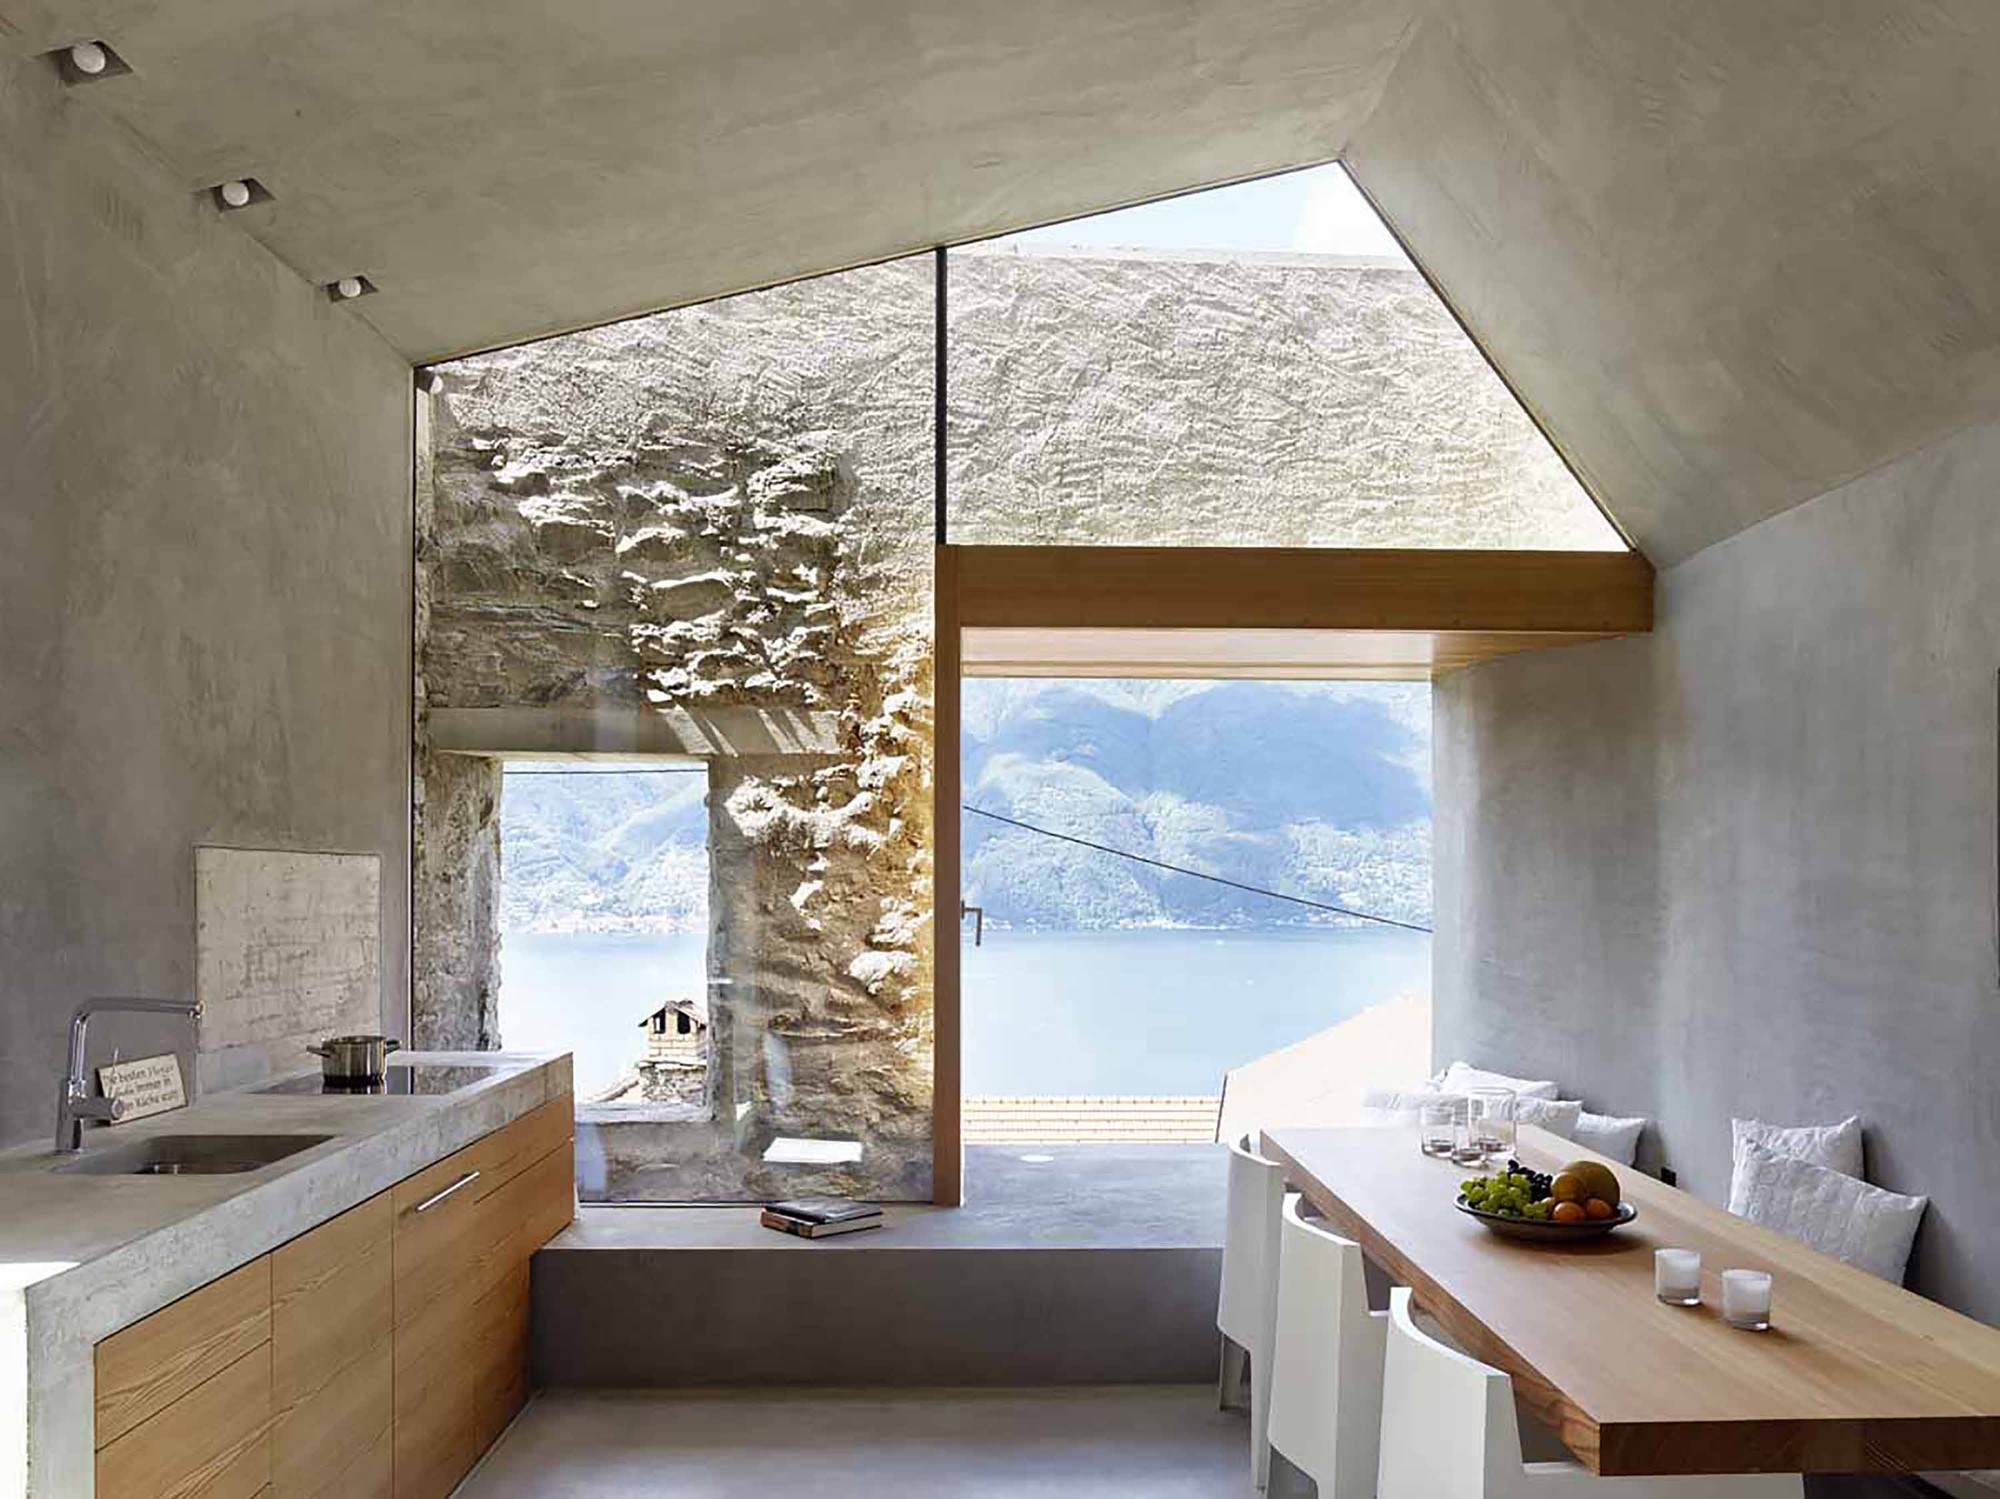 Gallery of Stone House Transformation in Scaiano / Wespi